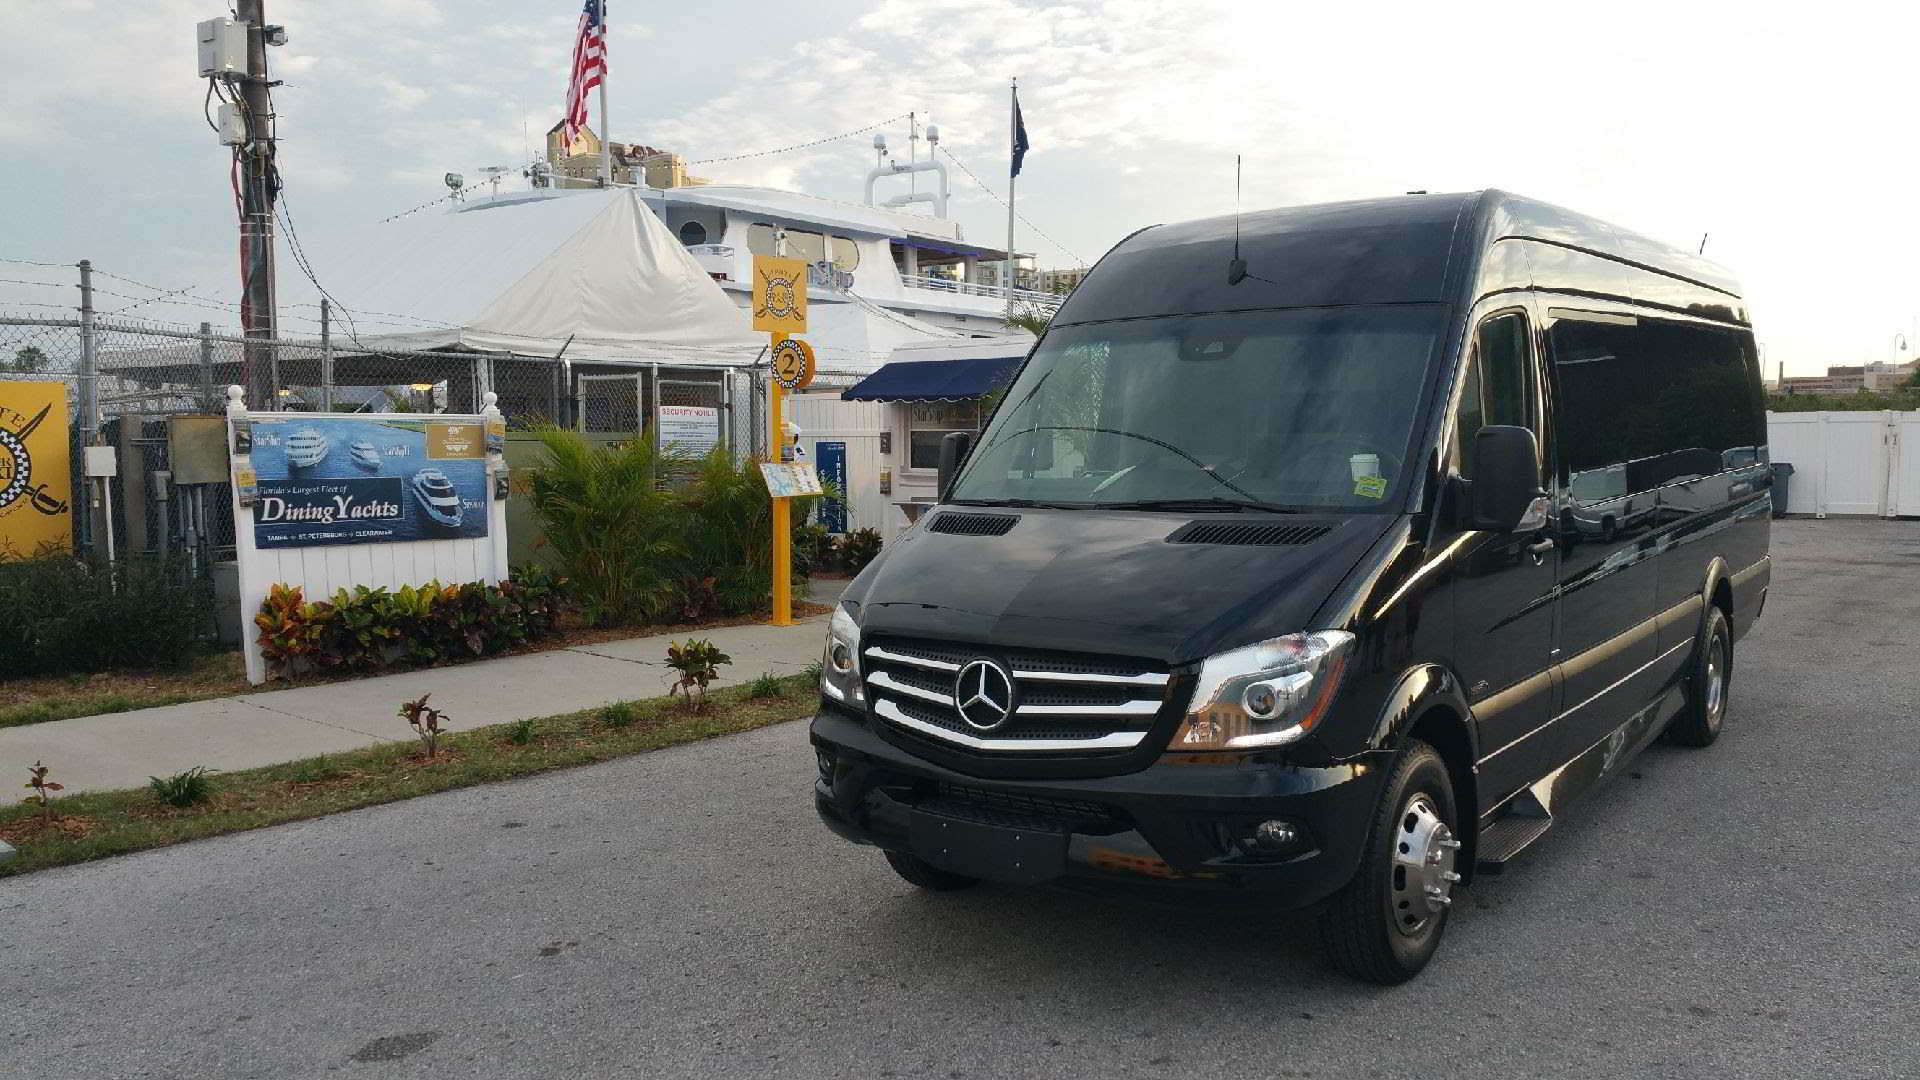 Photo of a Black 12 Passenger Party Bus, Dinner Cruise, Clearwater Beach, Florida.